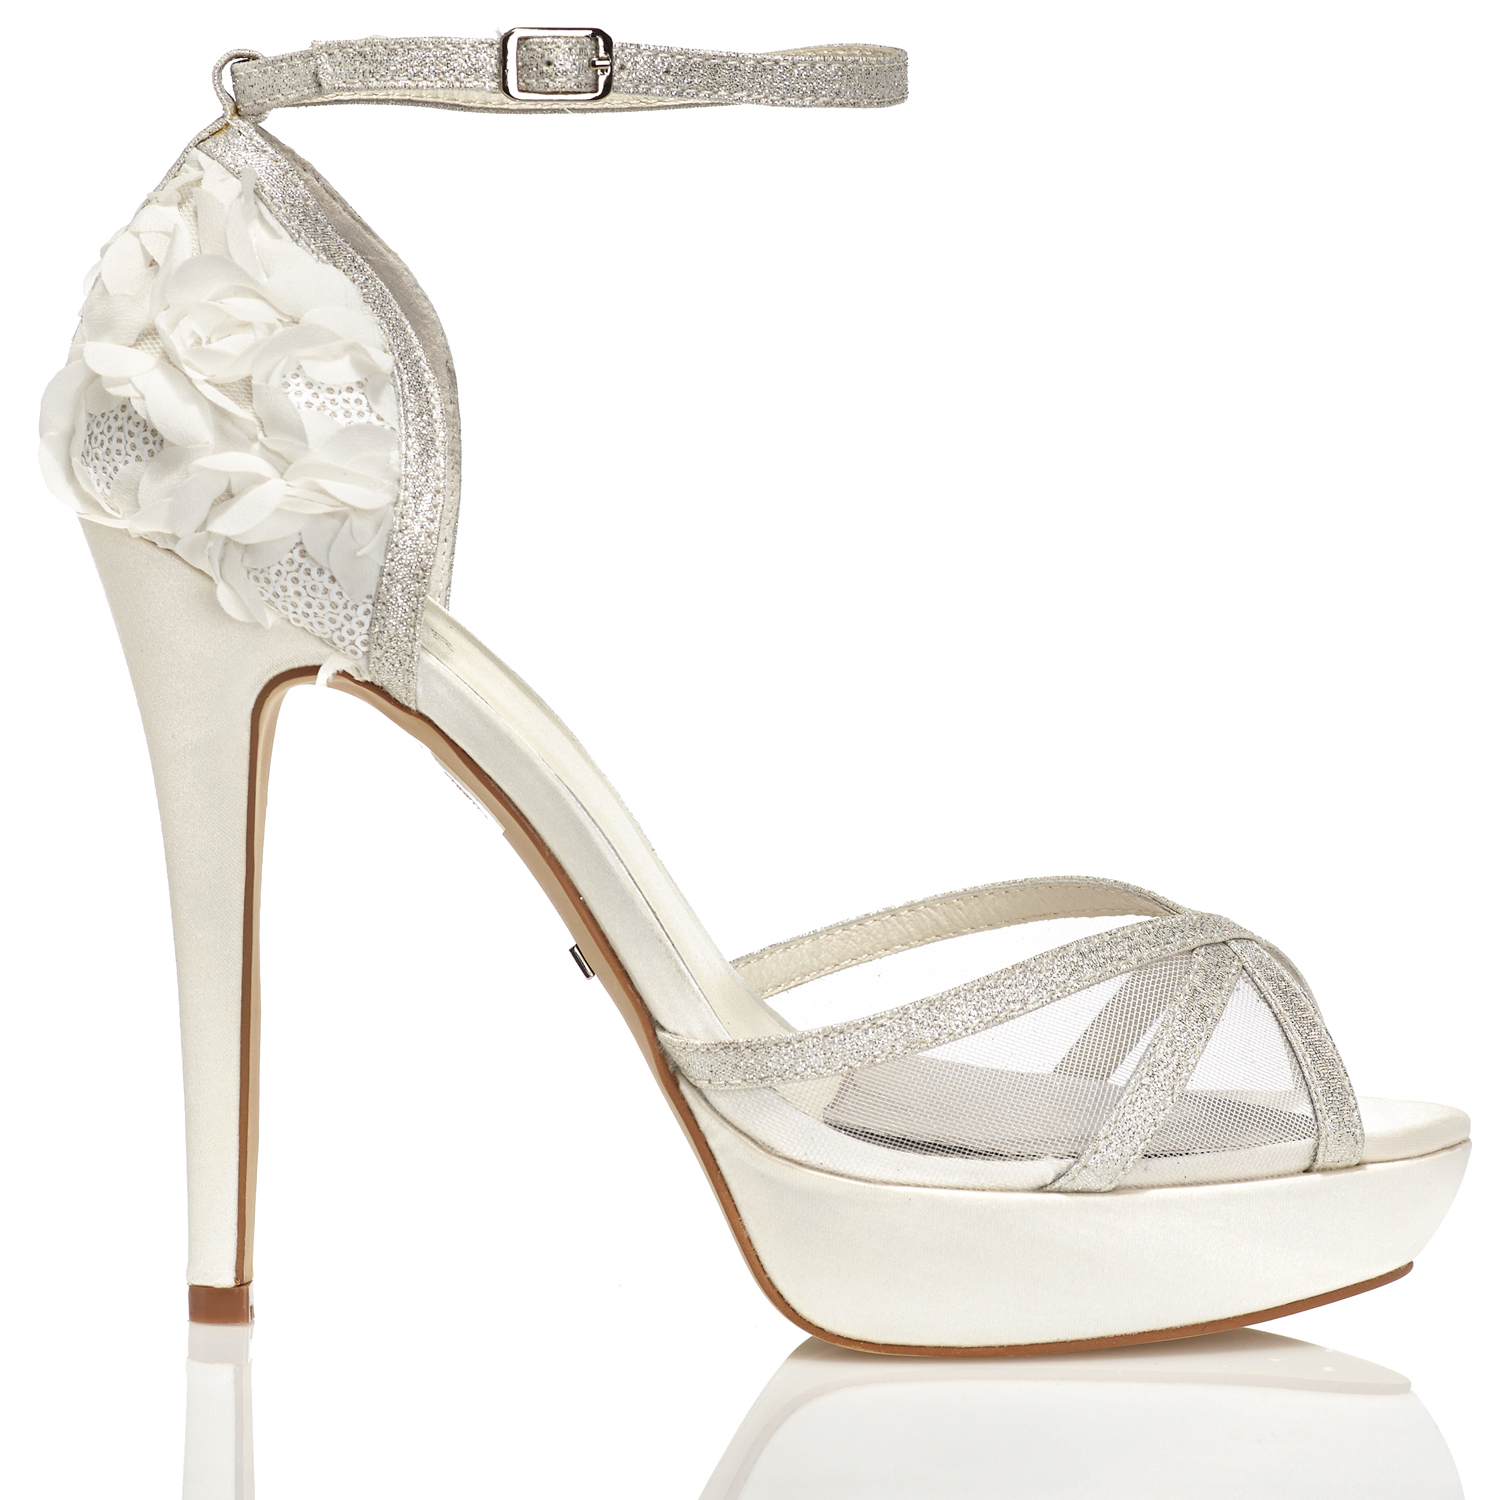 5fdad273daf Bridal Shoes – Matching Bridal Shoes . Menbur Shop . OFFICIAL SITE & SHOP  ONLINE